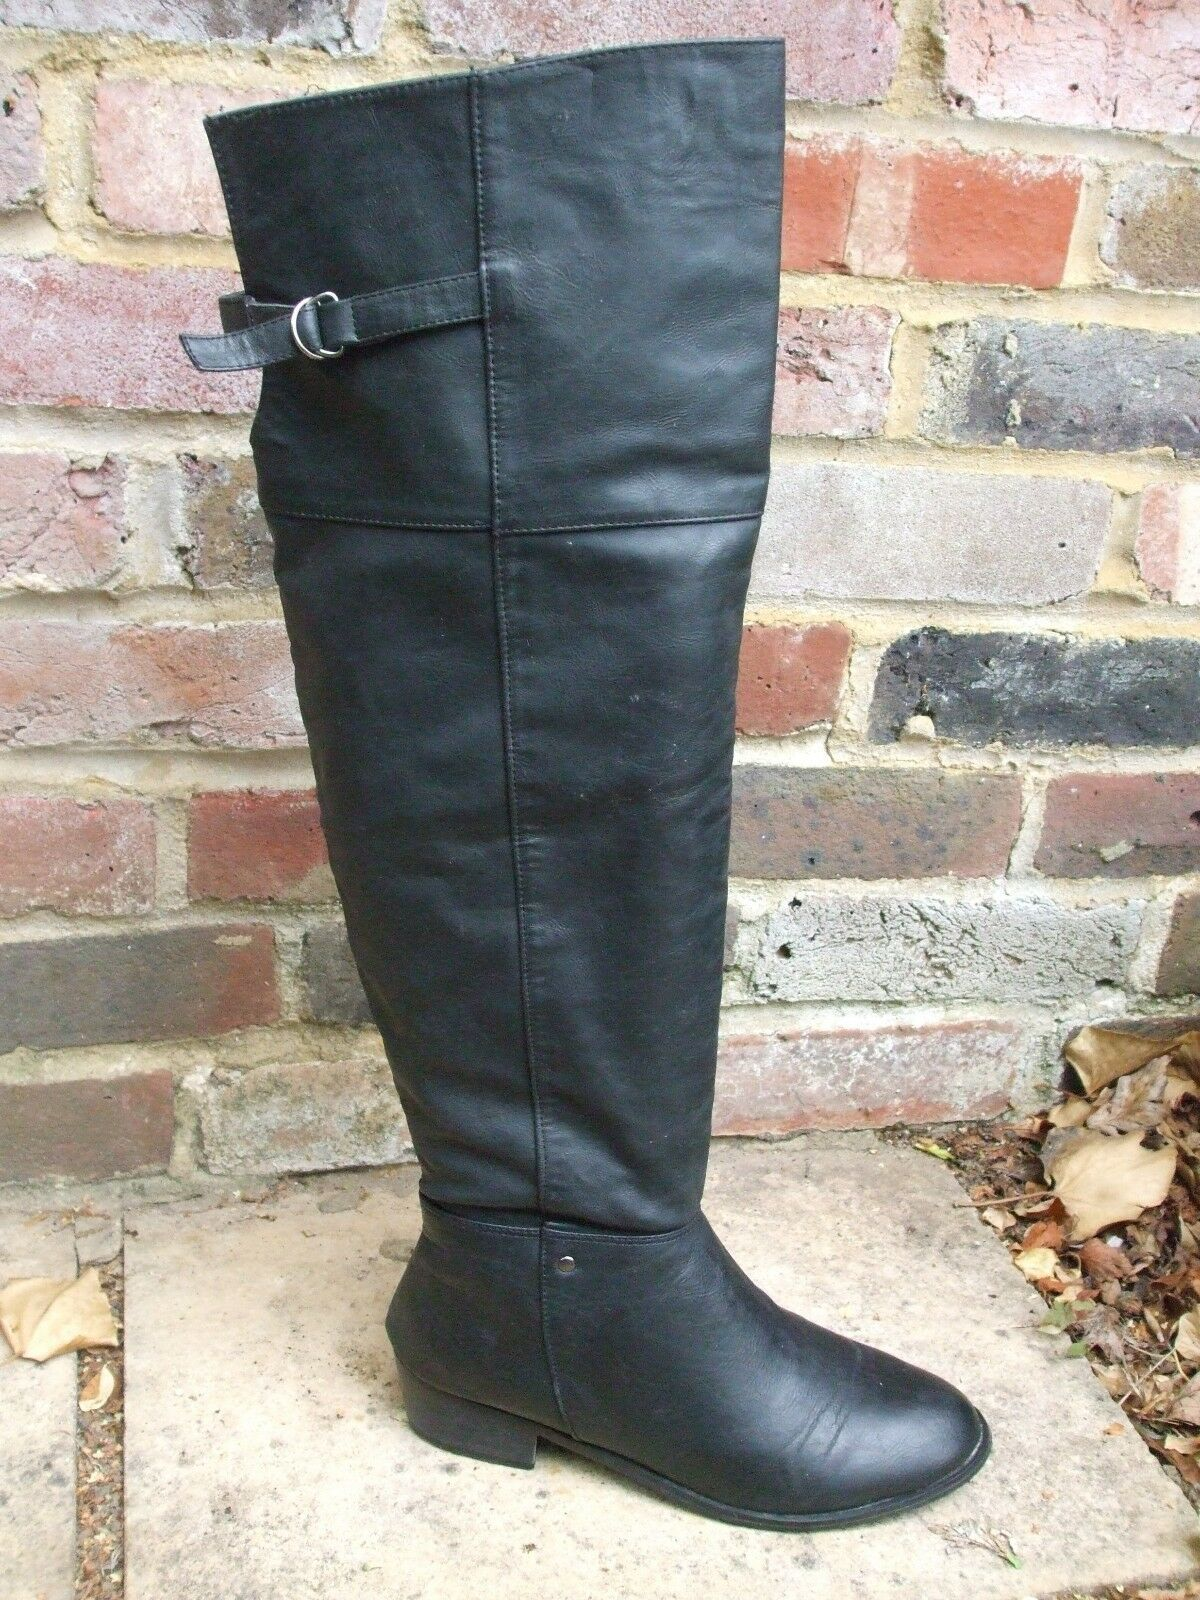 Gorgeous Black Over The Knee High Boots- Size 6